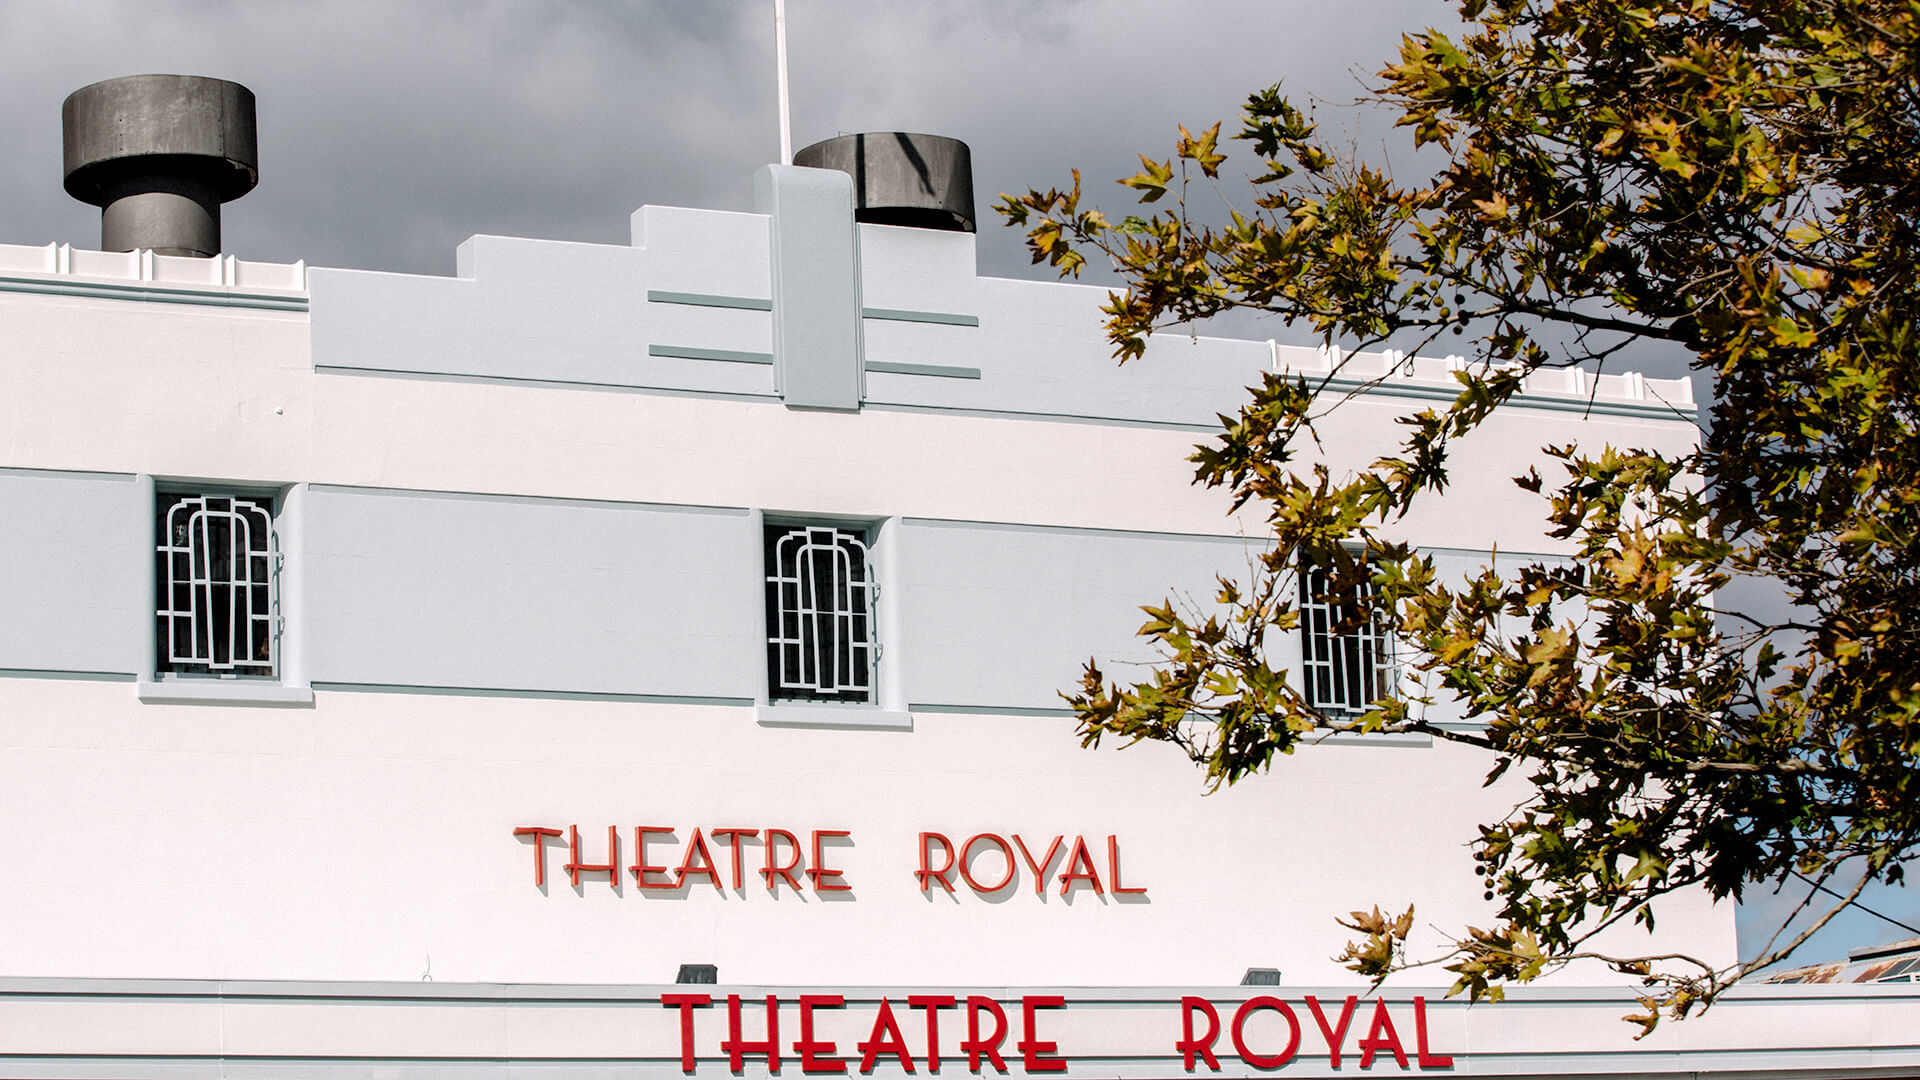 The Theatre Royal in Castlemaine